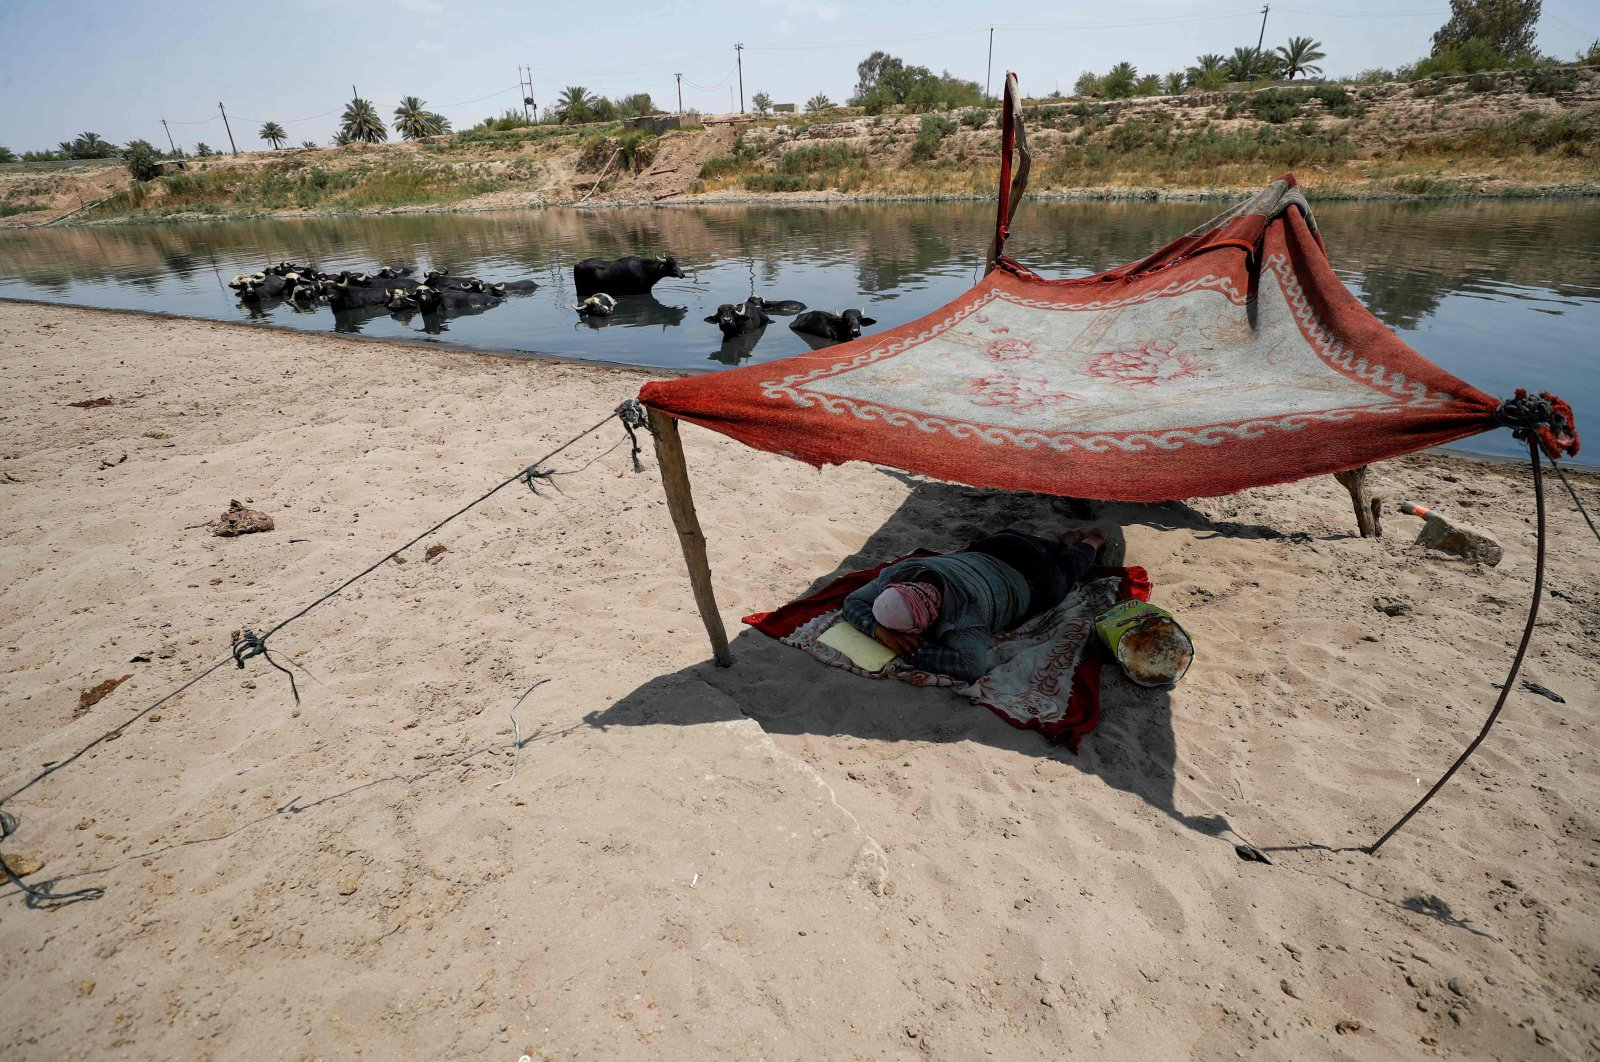 An Iraqi herder sleeps as his buffalo cool off in the Diyala River in the Faziliah district, east of Baghdad, Iraq, Aug. 2, 2021.  (AFP Photo)